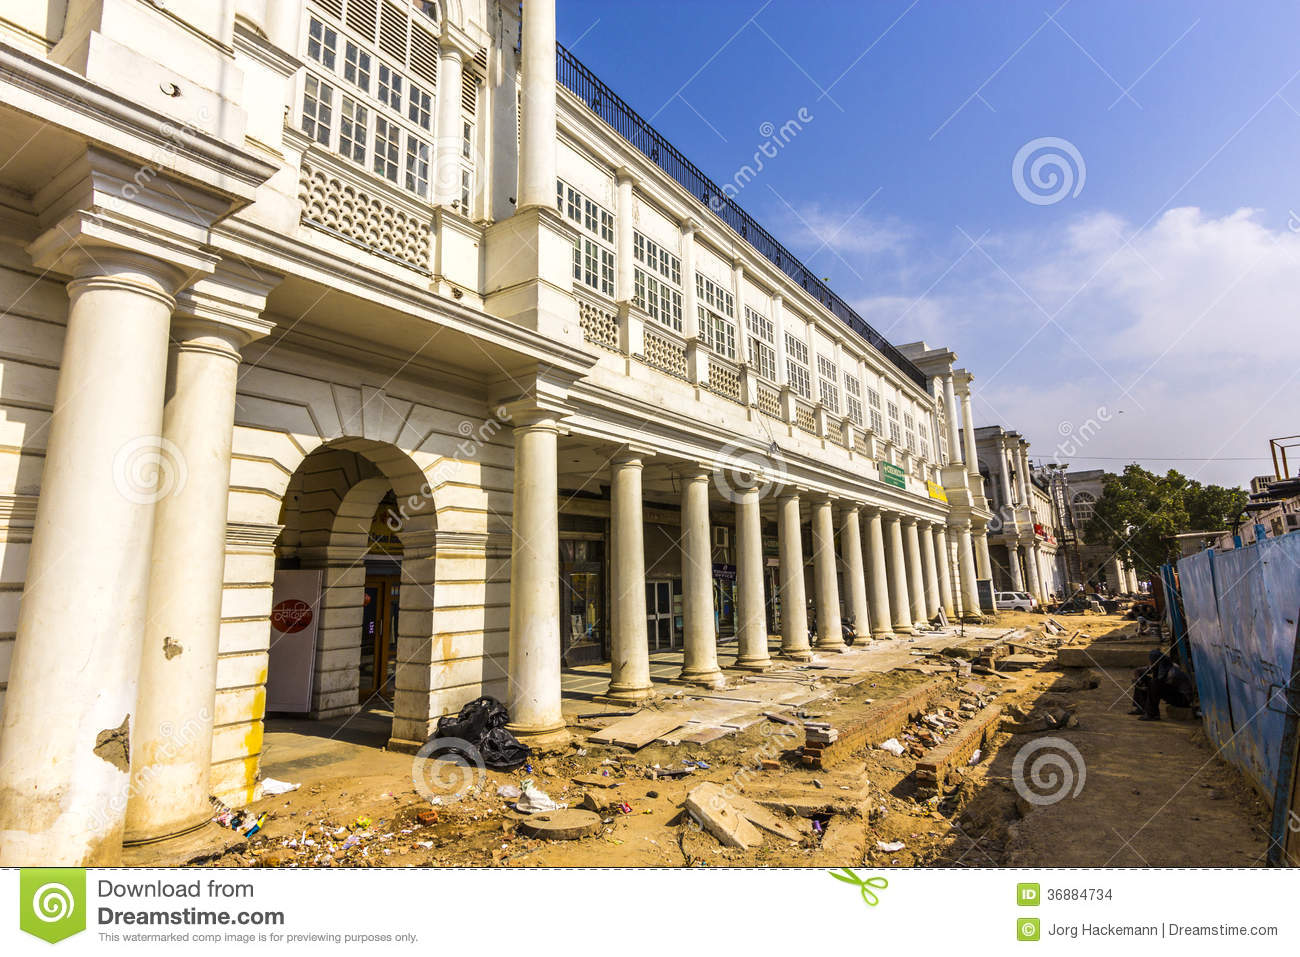 Download Cantiere Al Posto Di Connaught Immagine Stock Editoriale - Immagine di asia, duca: 36884734